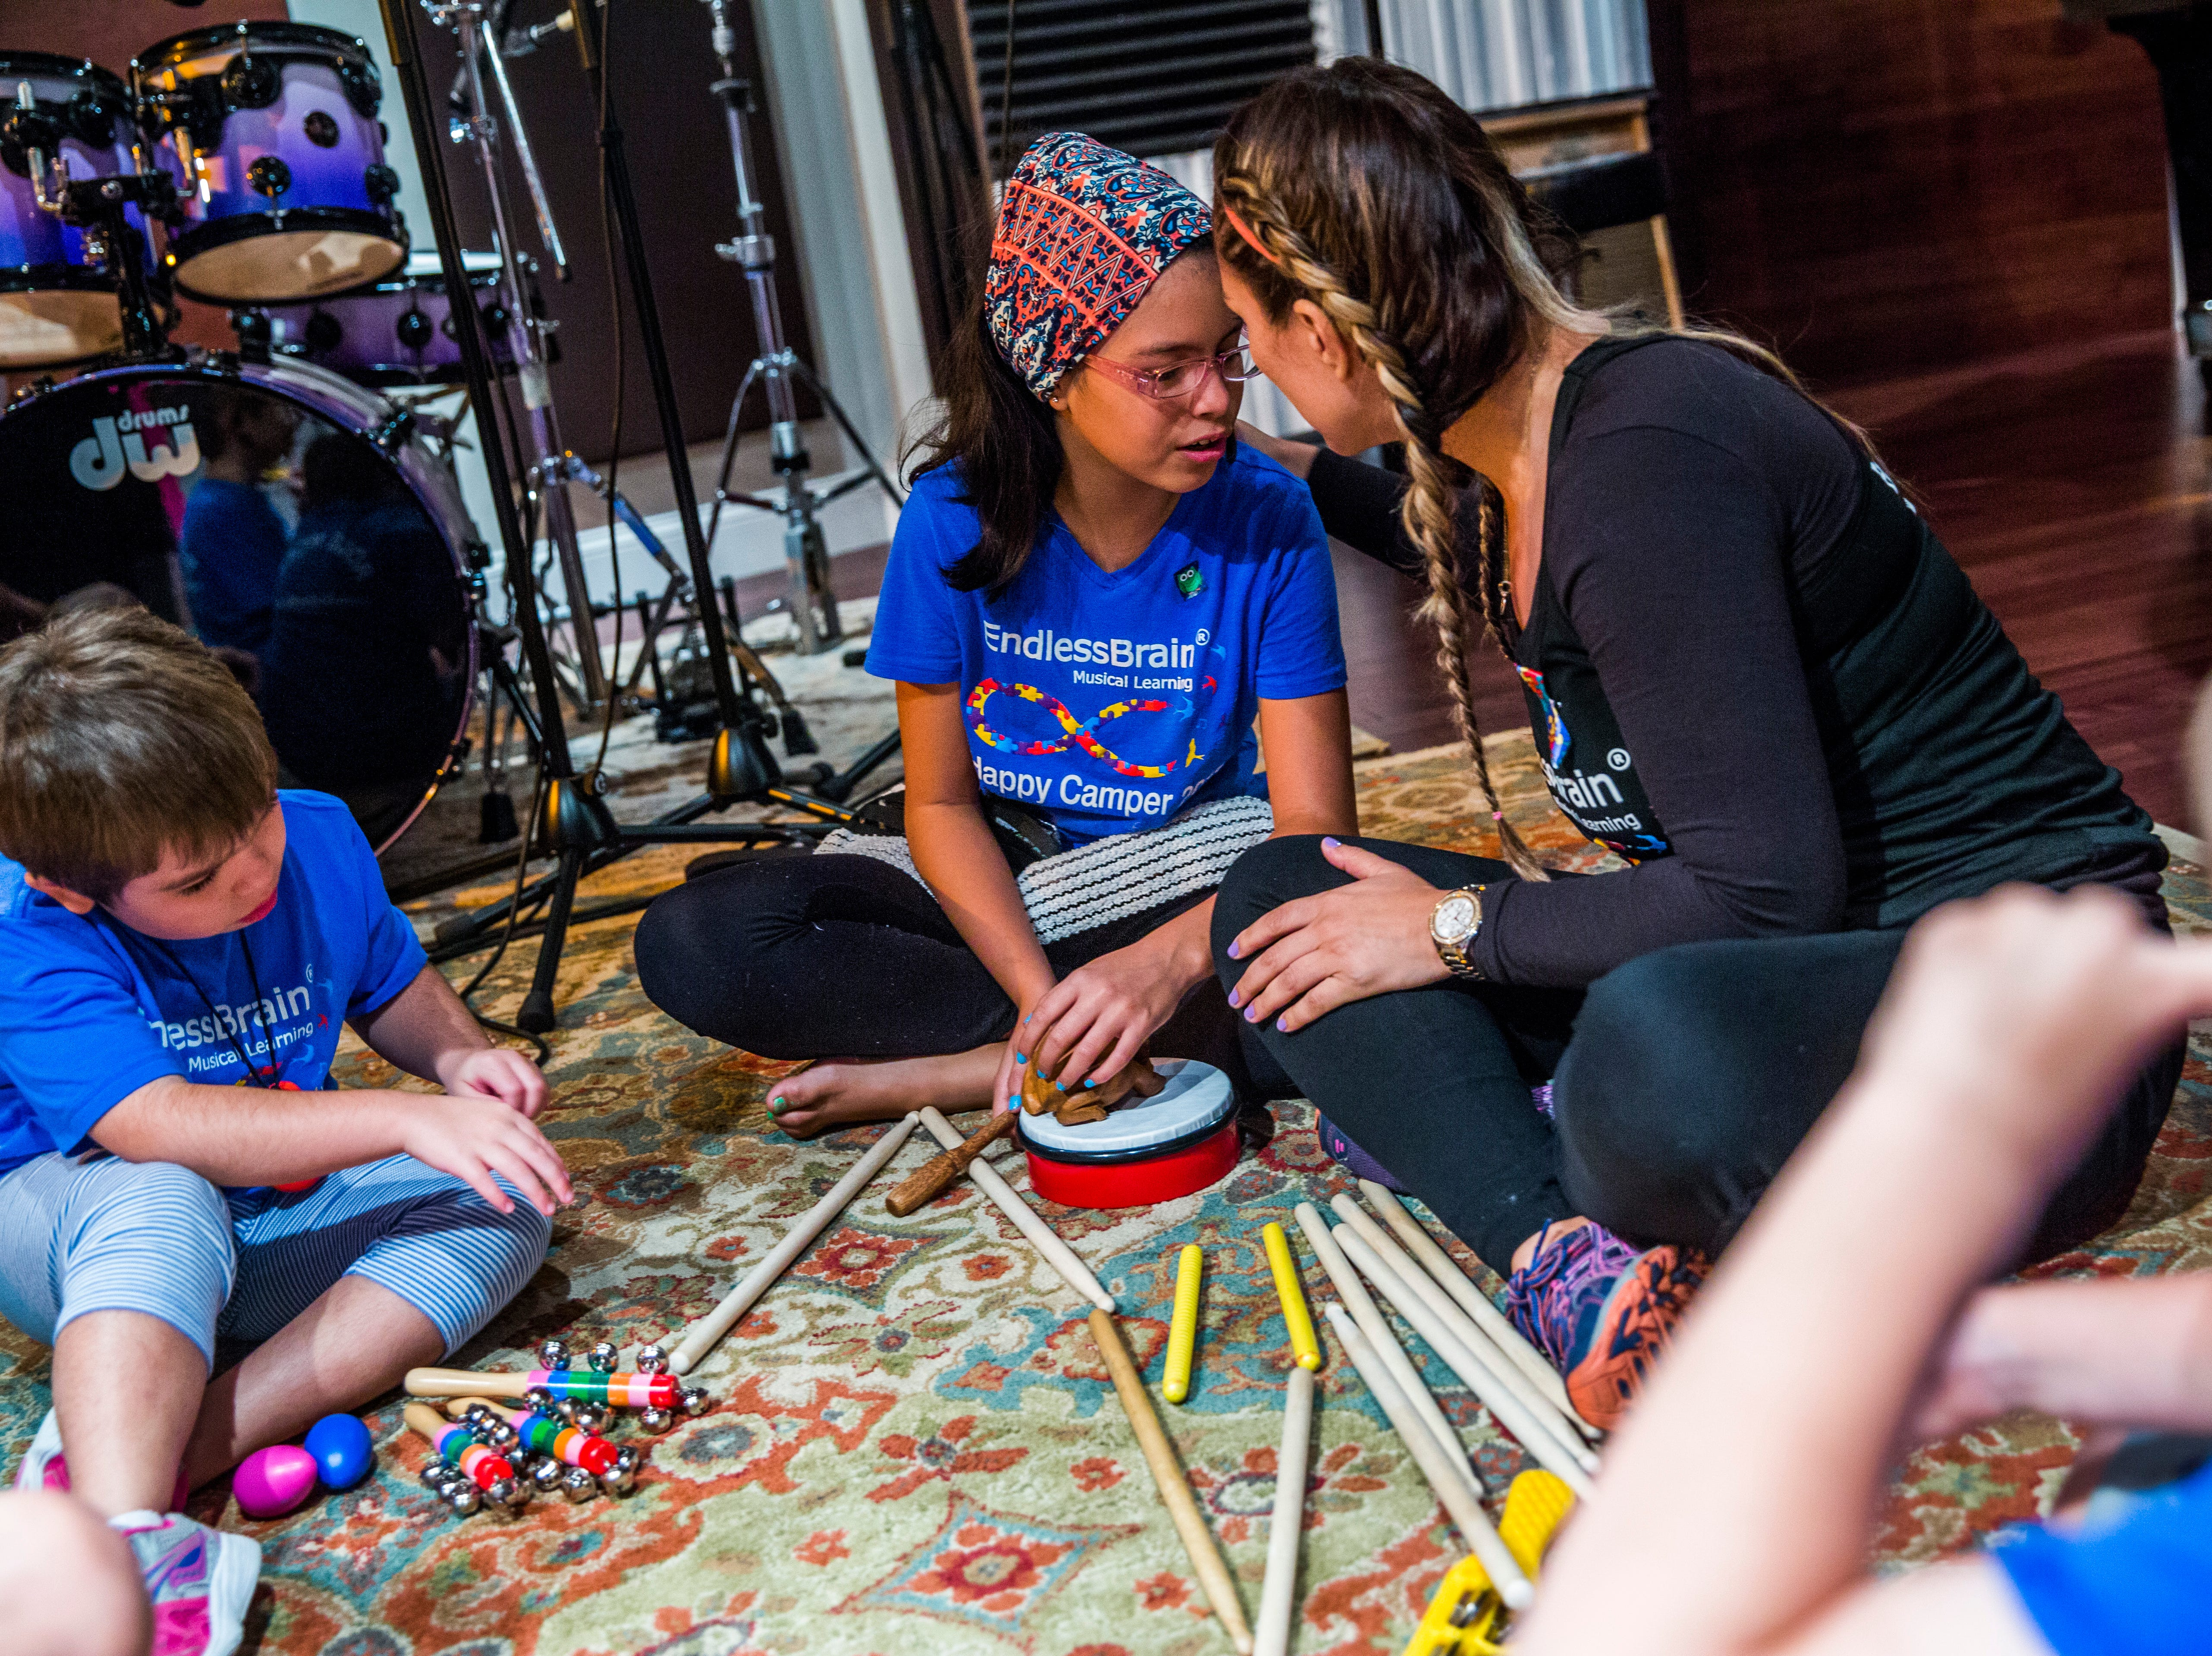 """Marcela Guimoye and her daughter Camila Chang, 11, share a moment together at Mastertrax Recording Studio during the EndlessBrain summer camp in Bonita Springs on Tuesday, Aug. 7, 2018. """"It's (endless brain) all her. It's always been her,"""" Guimoye says of her daughter."""